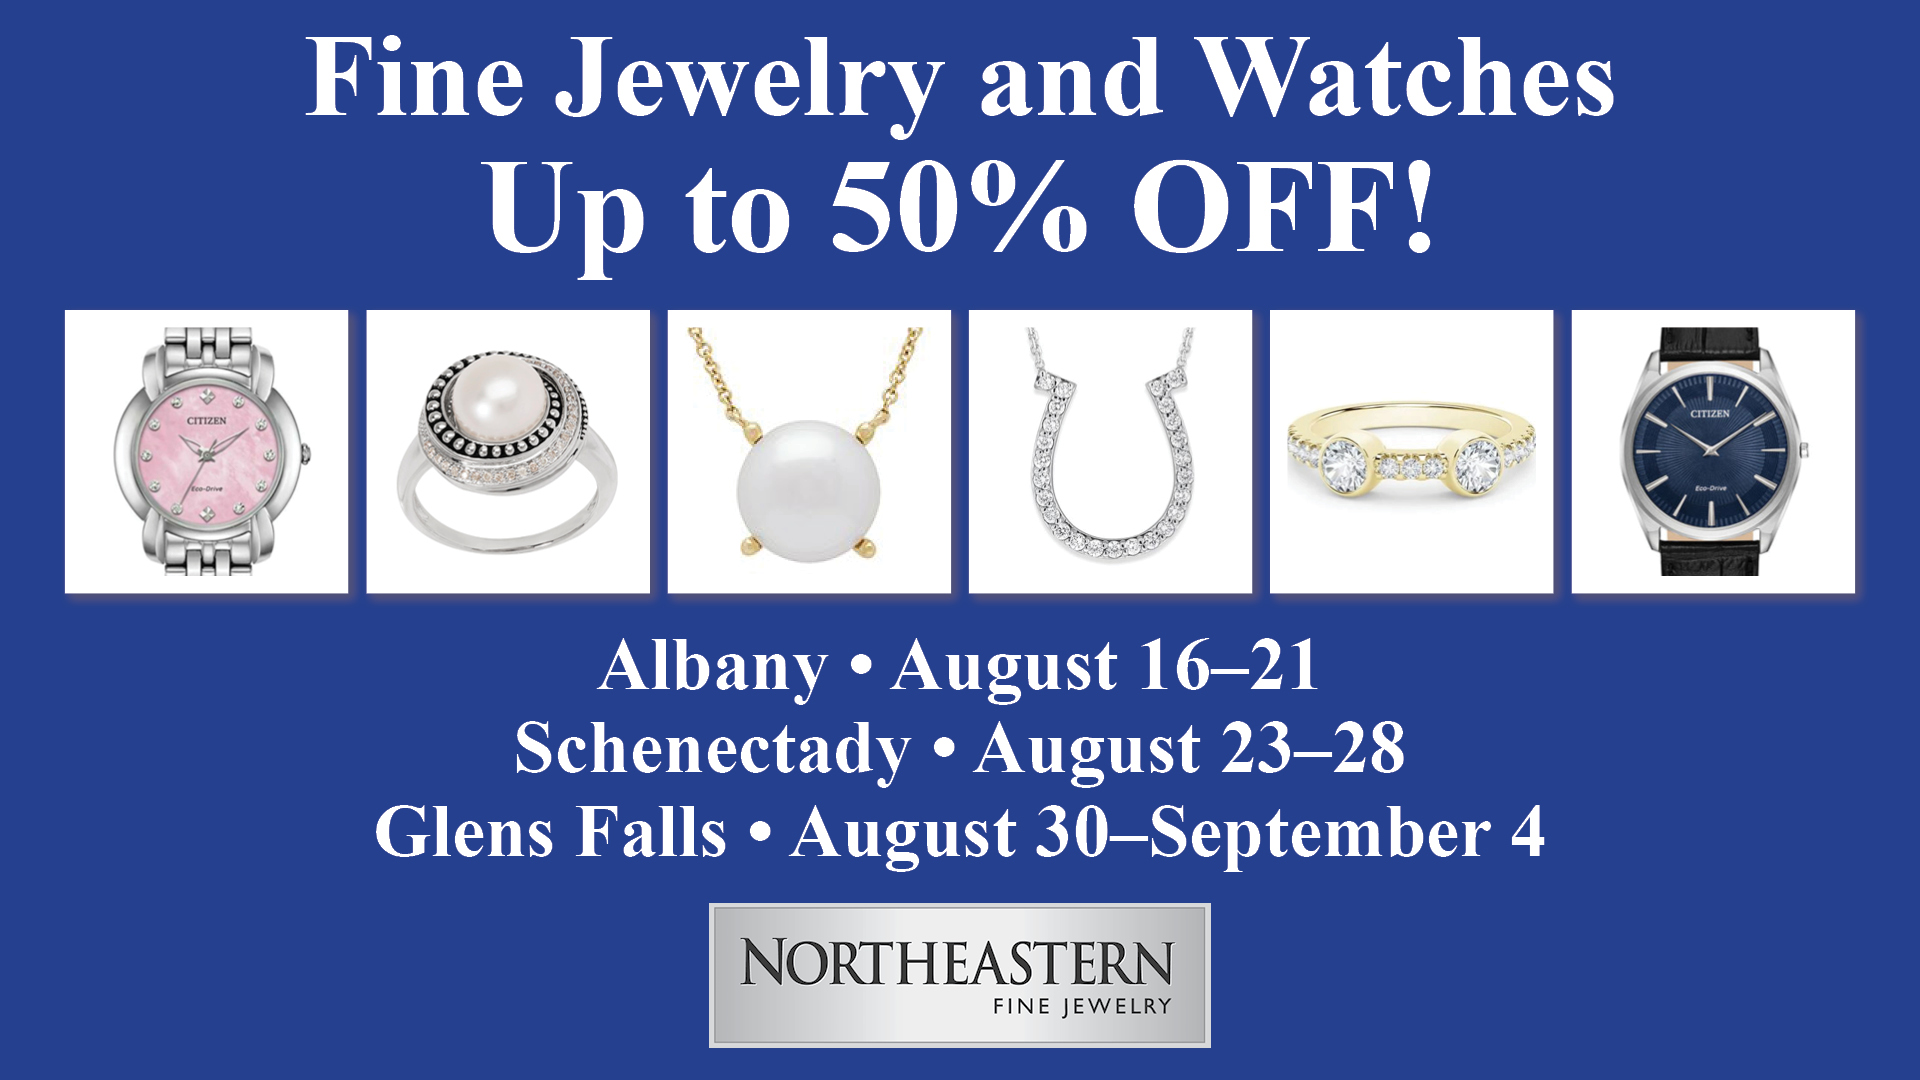 Northeastern Fine Jewelry Announces An End of the Season Summer Sale